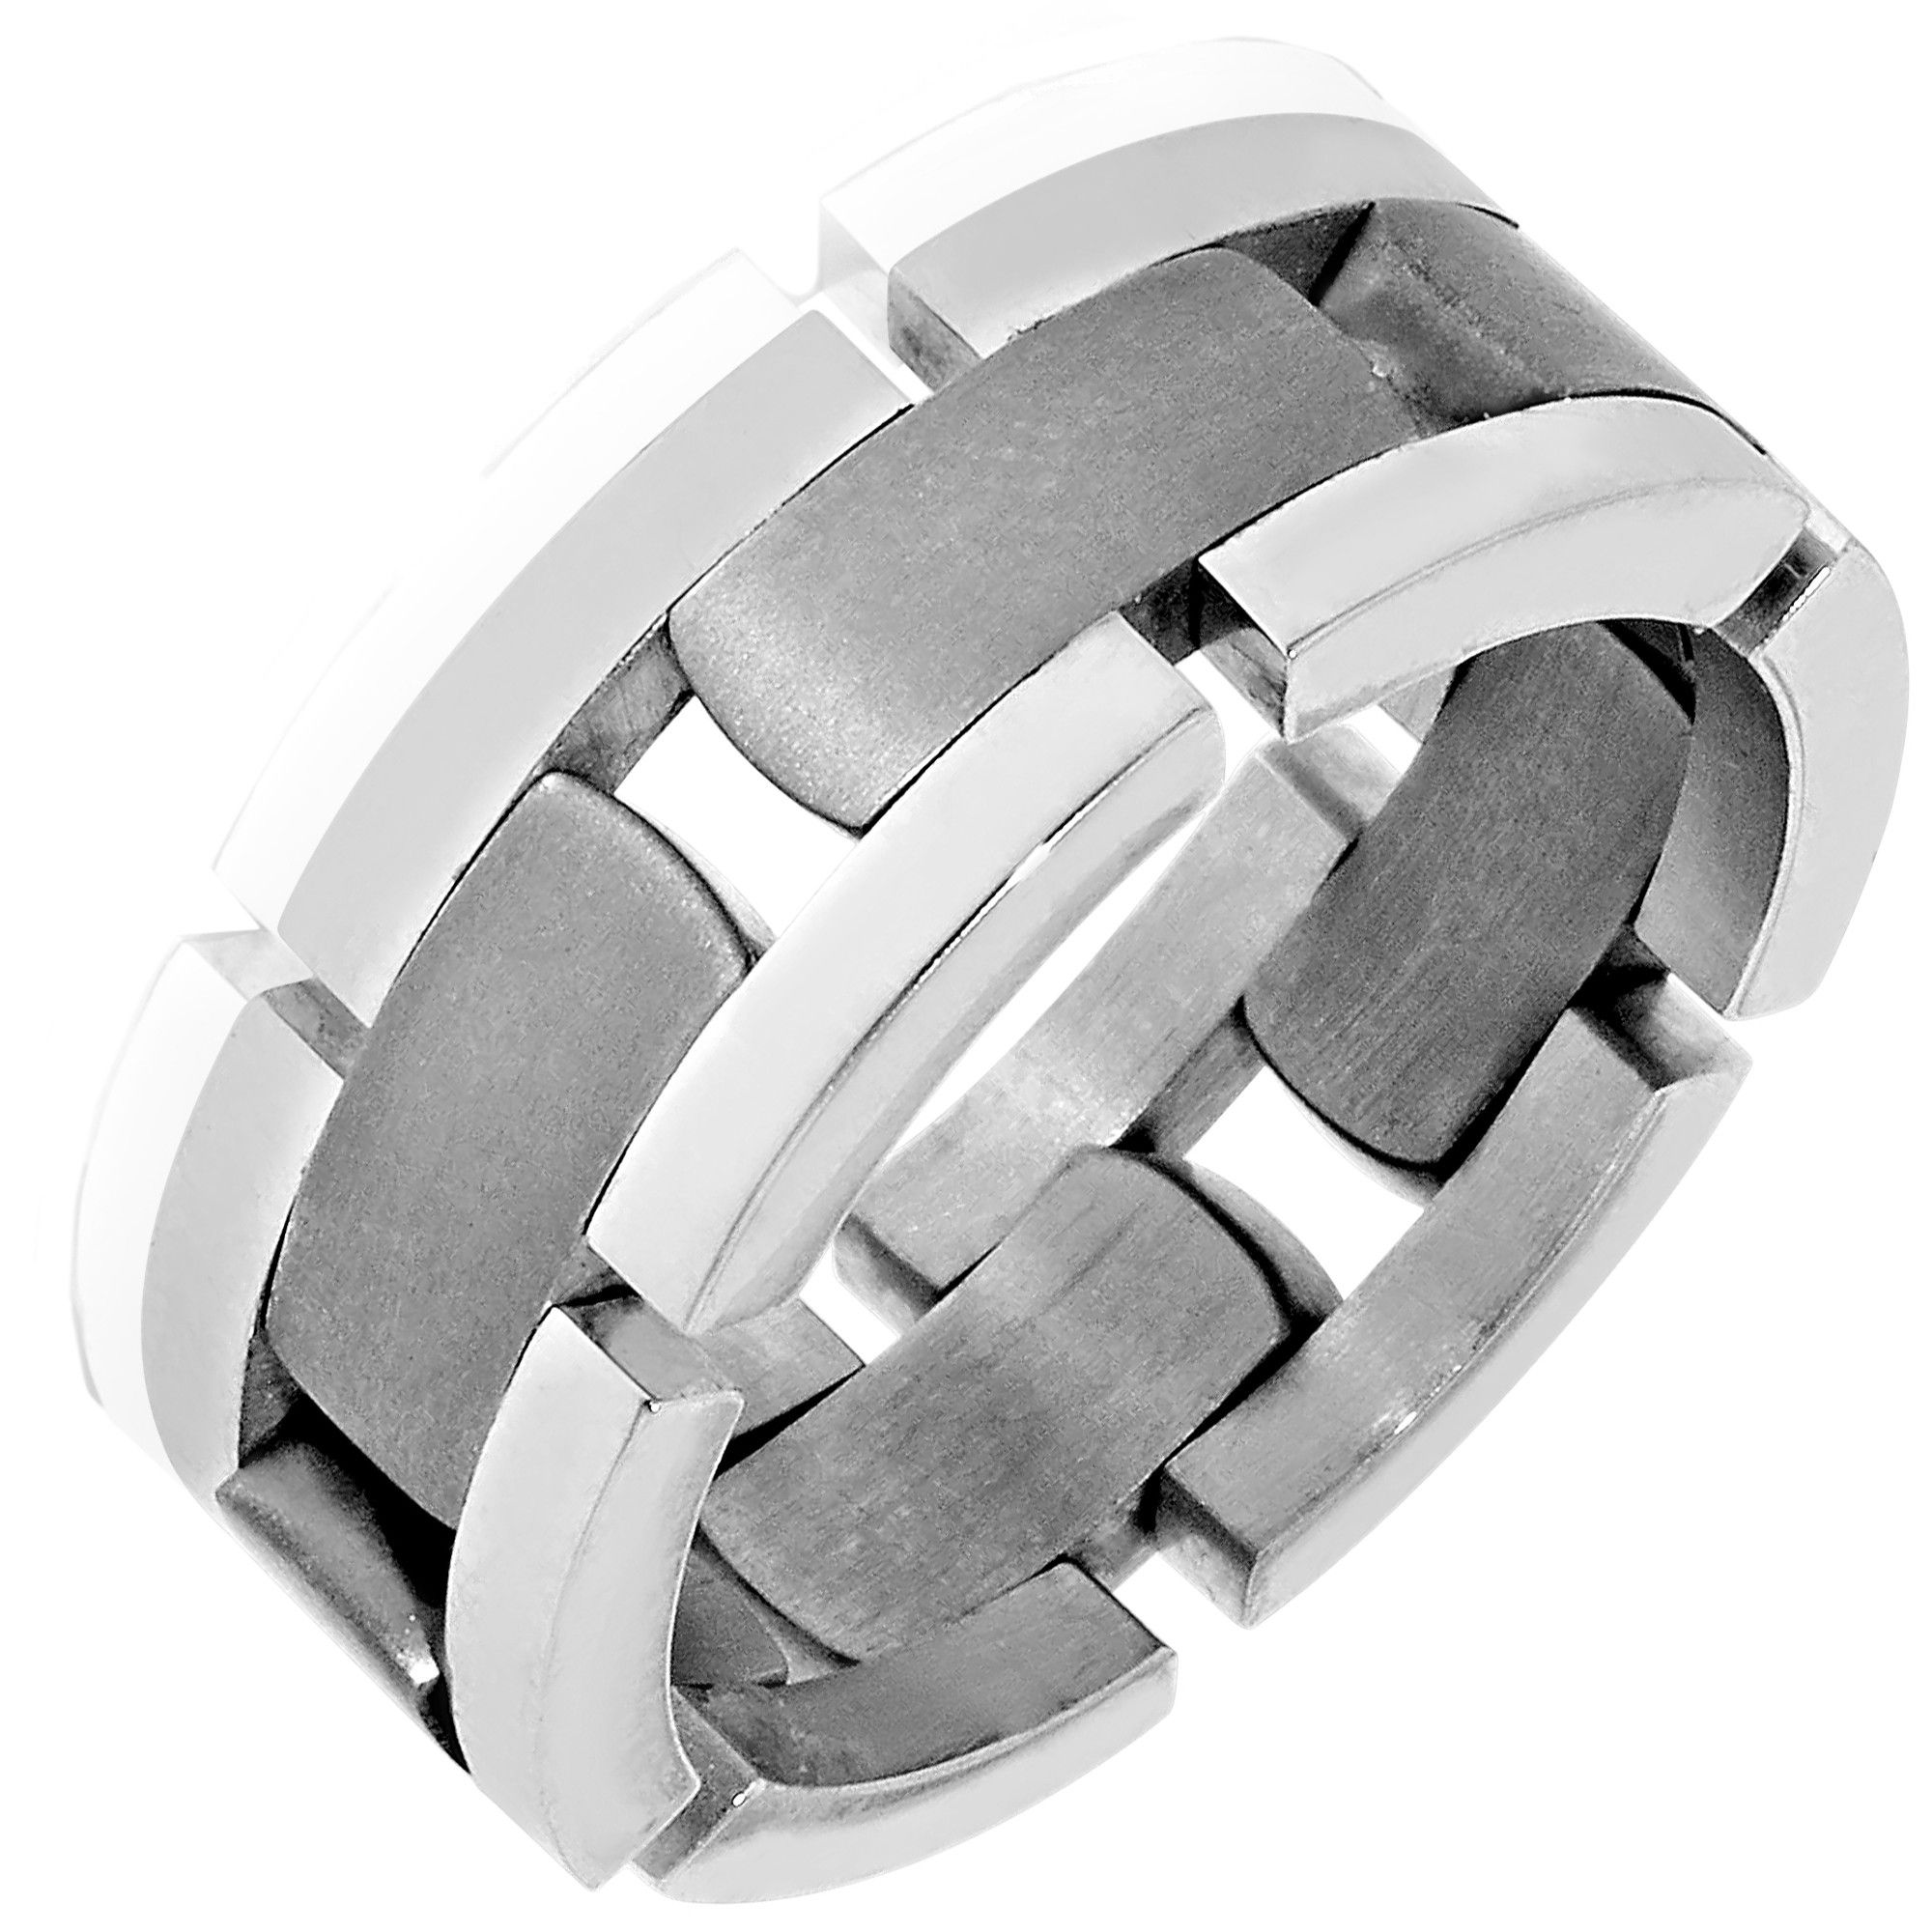 A man needs a wedding band that is as unique as he is